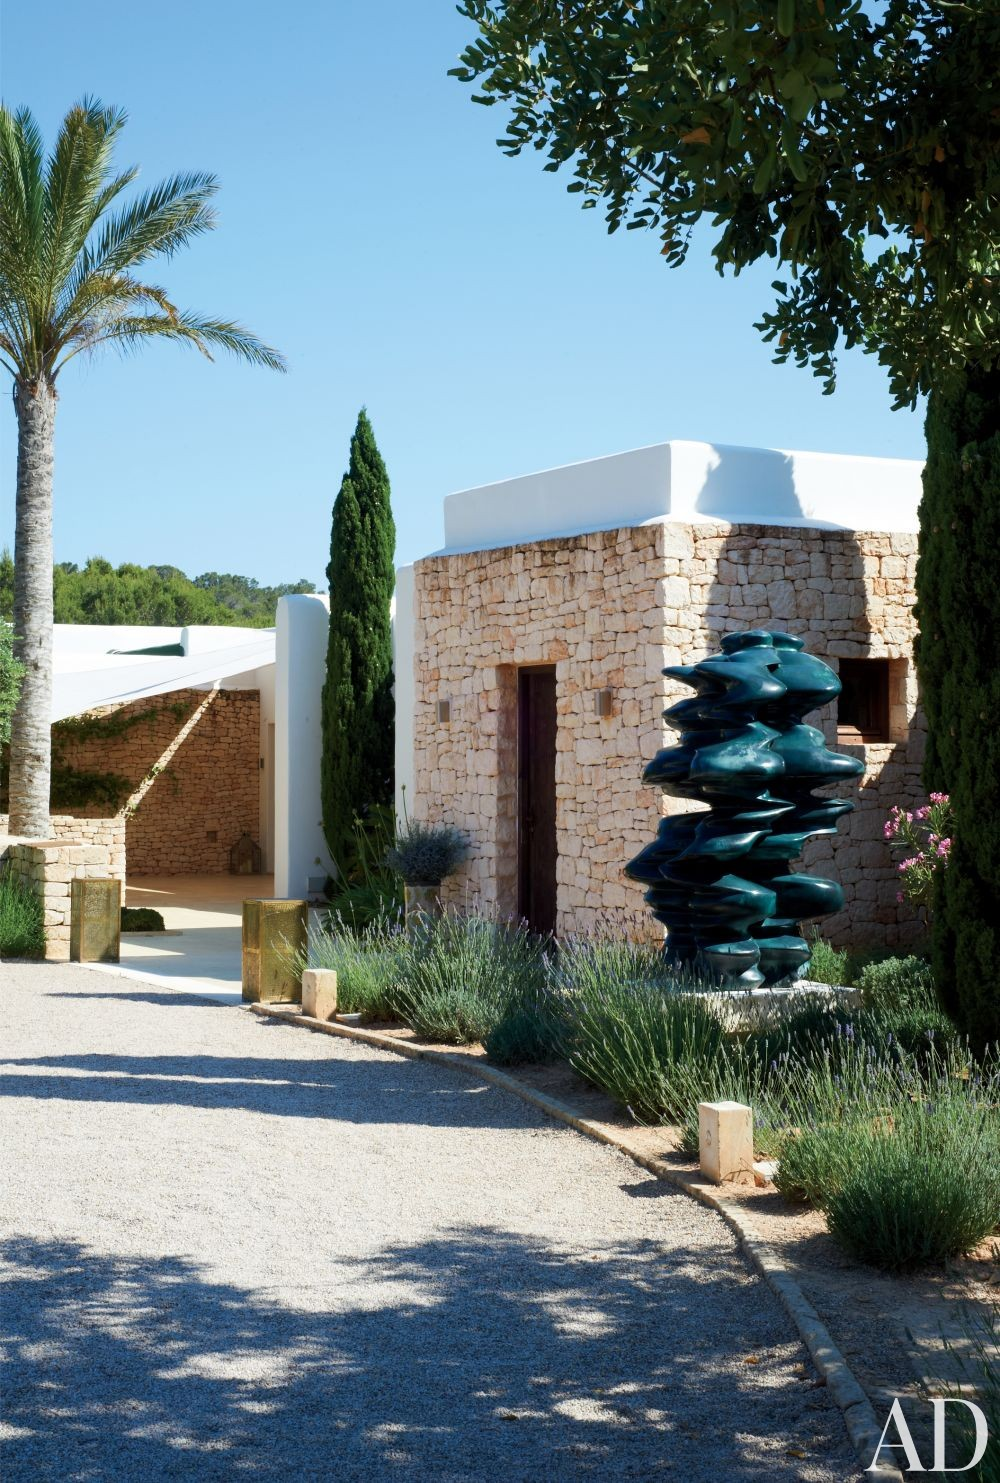 Exotic Exterior by Carden Cunietti Ltd. in Ibiza